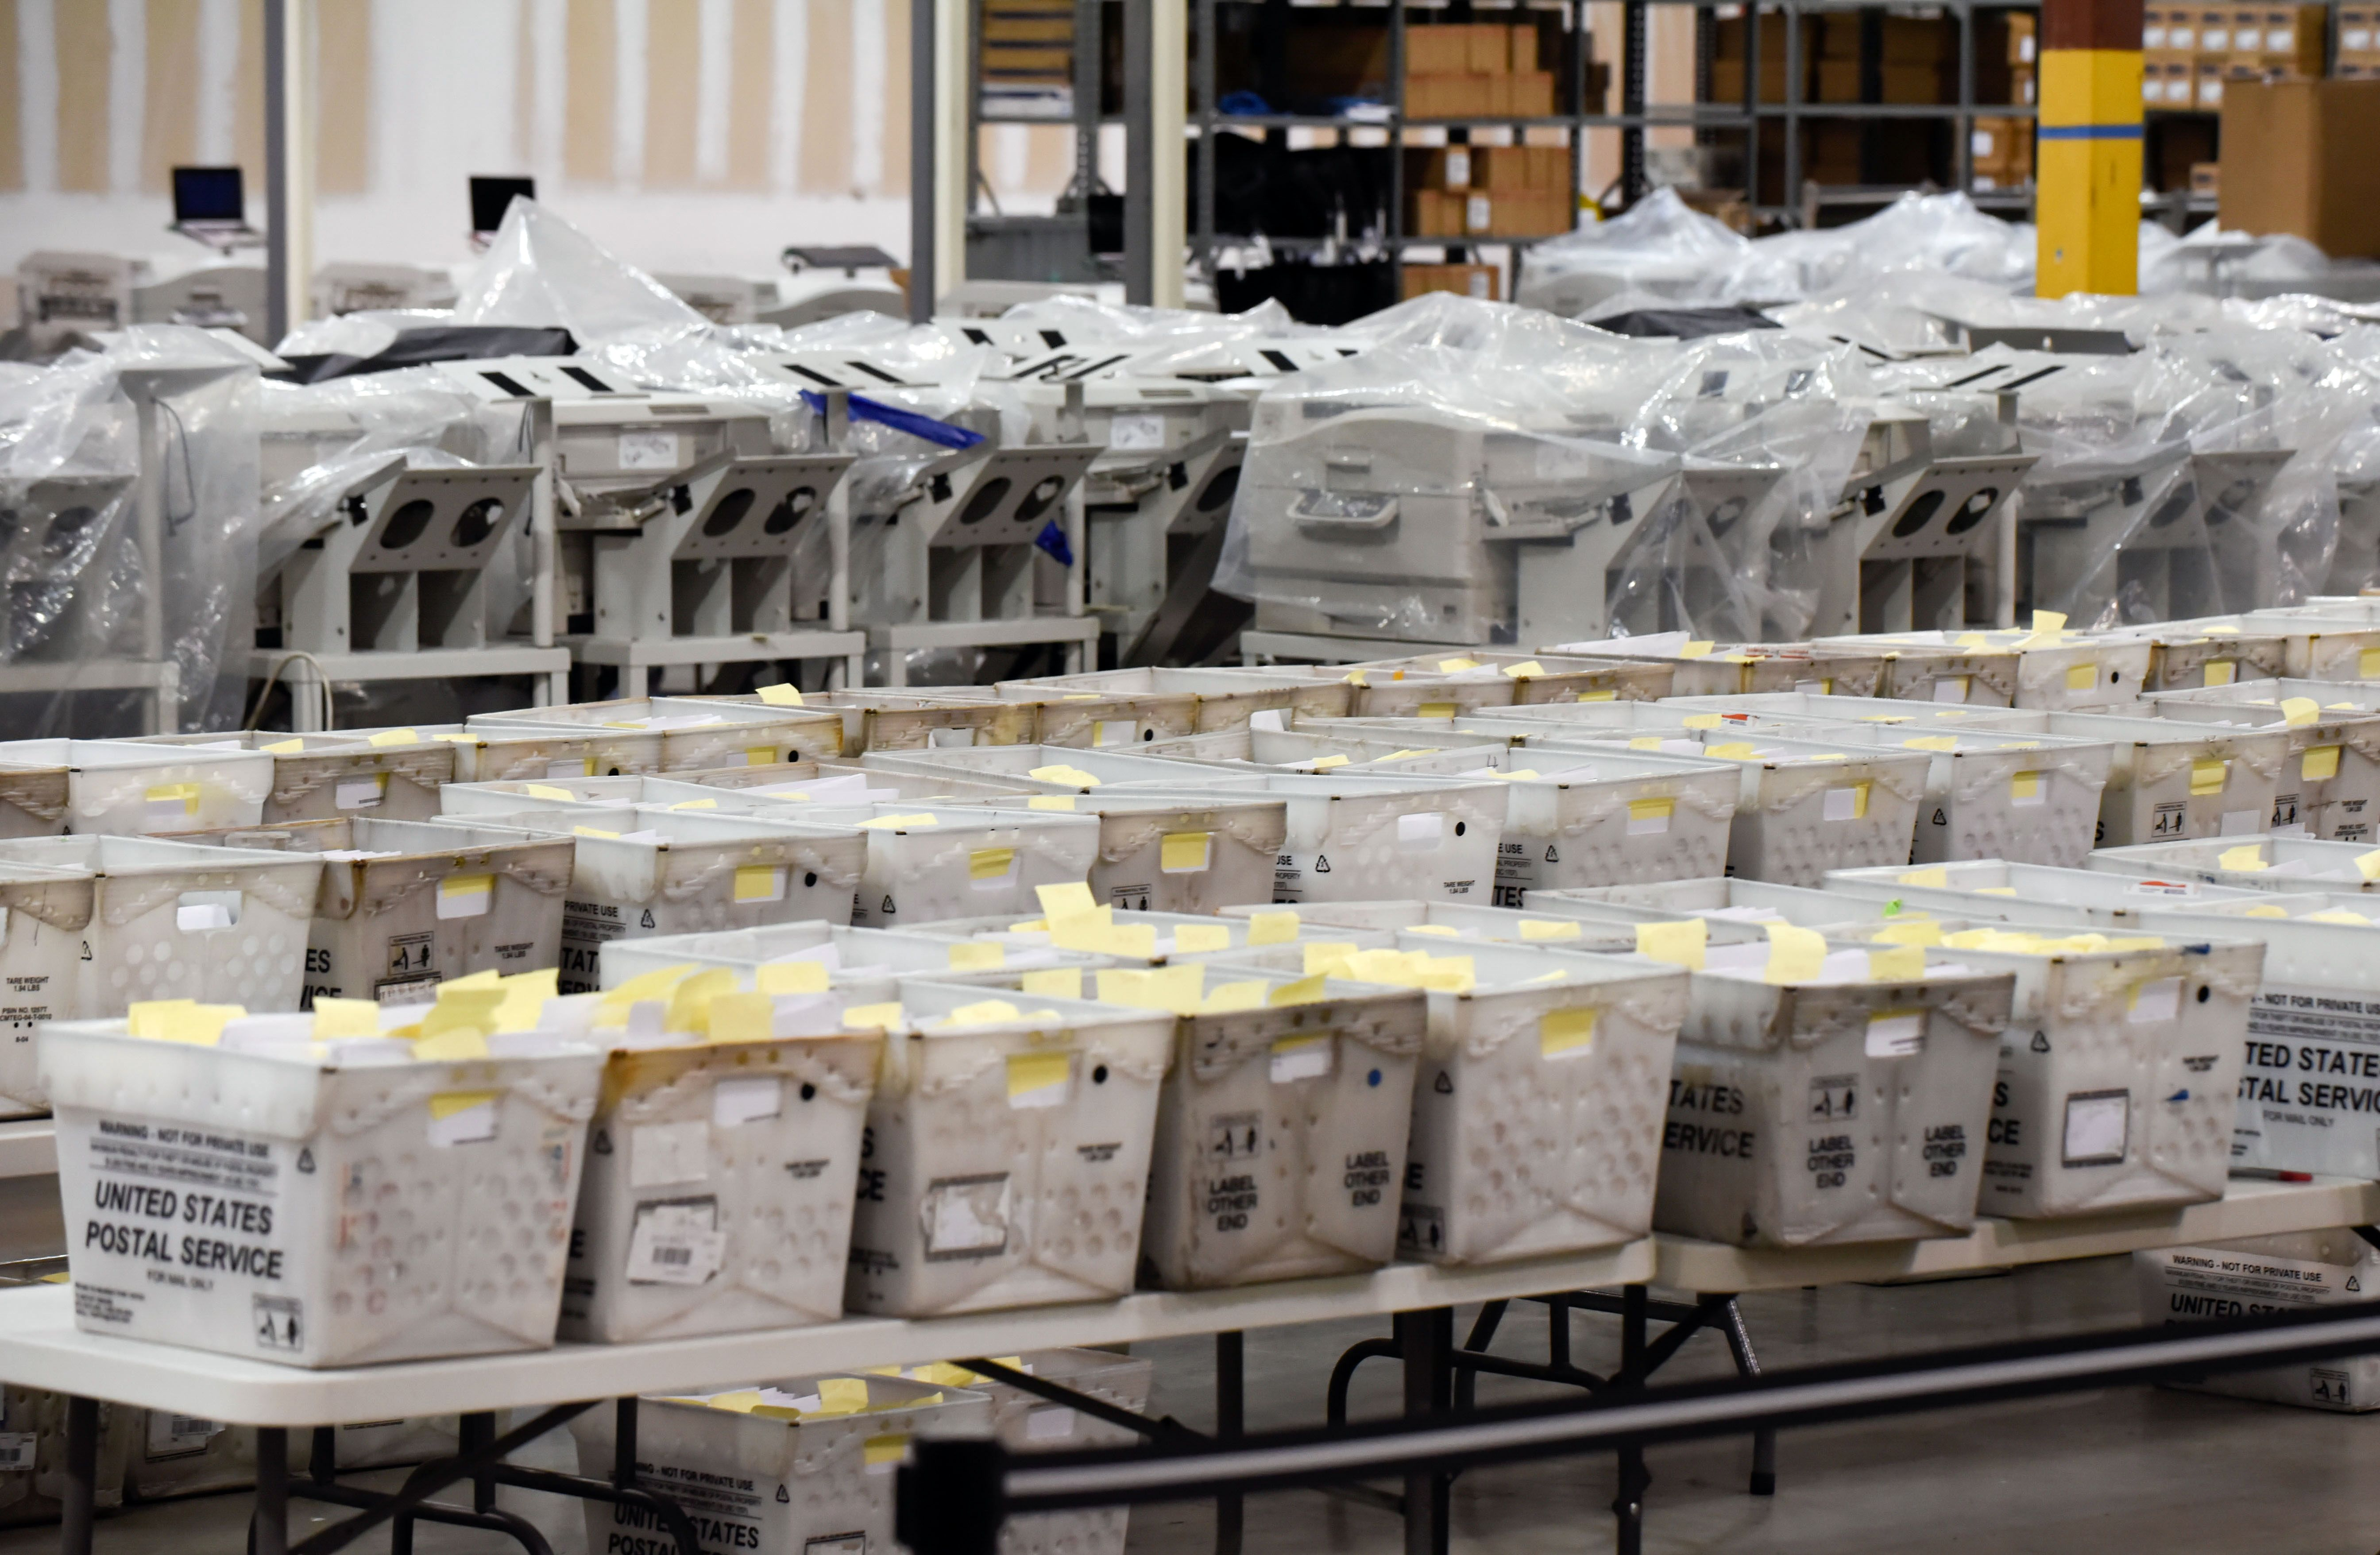 Ballot await recounting on November 15, 2018, in West Palm Beach, Florida. - Bucher spoke regarding reconciling votes already counted after a machine broke down. Final results have yet to be declared in multiple races following last week's midterm polls, with tense recounts underway in Florida. (MICHELE EVE SANDBERG/AFP/Getty Images)